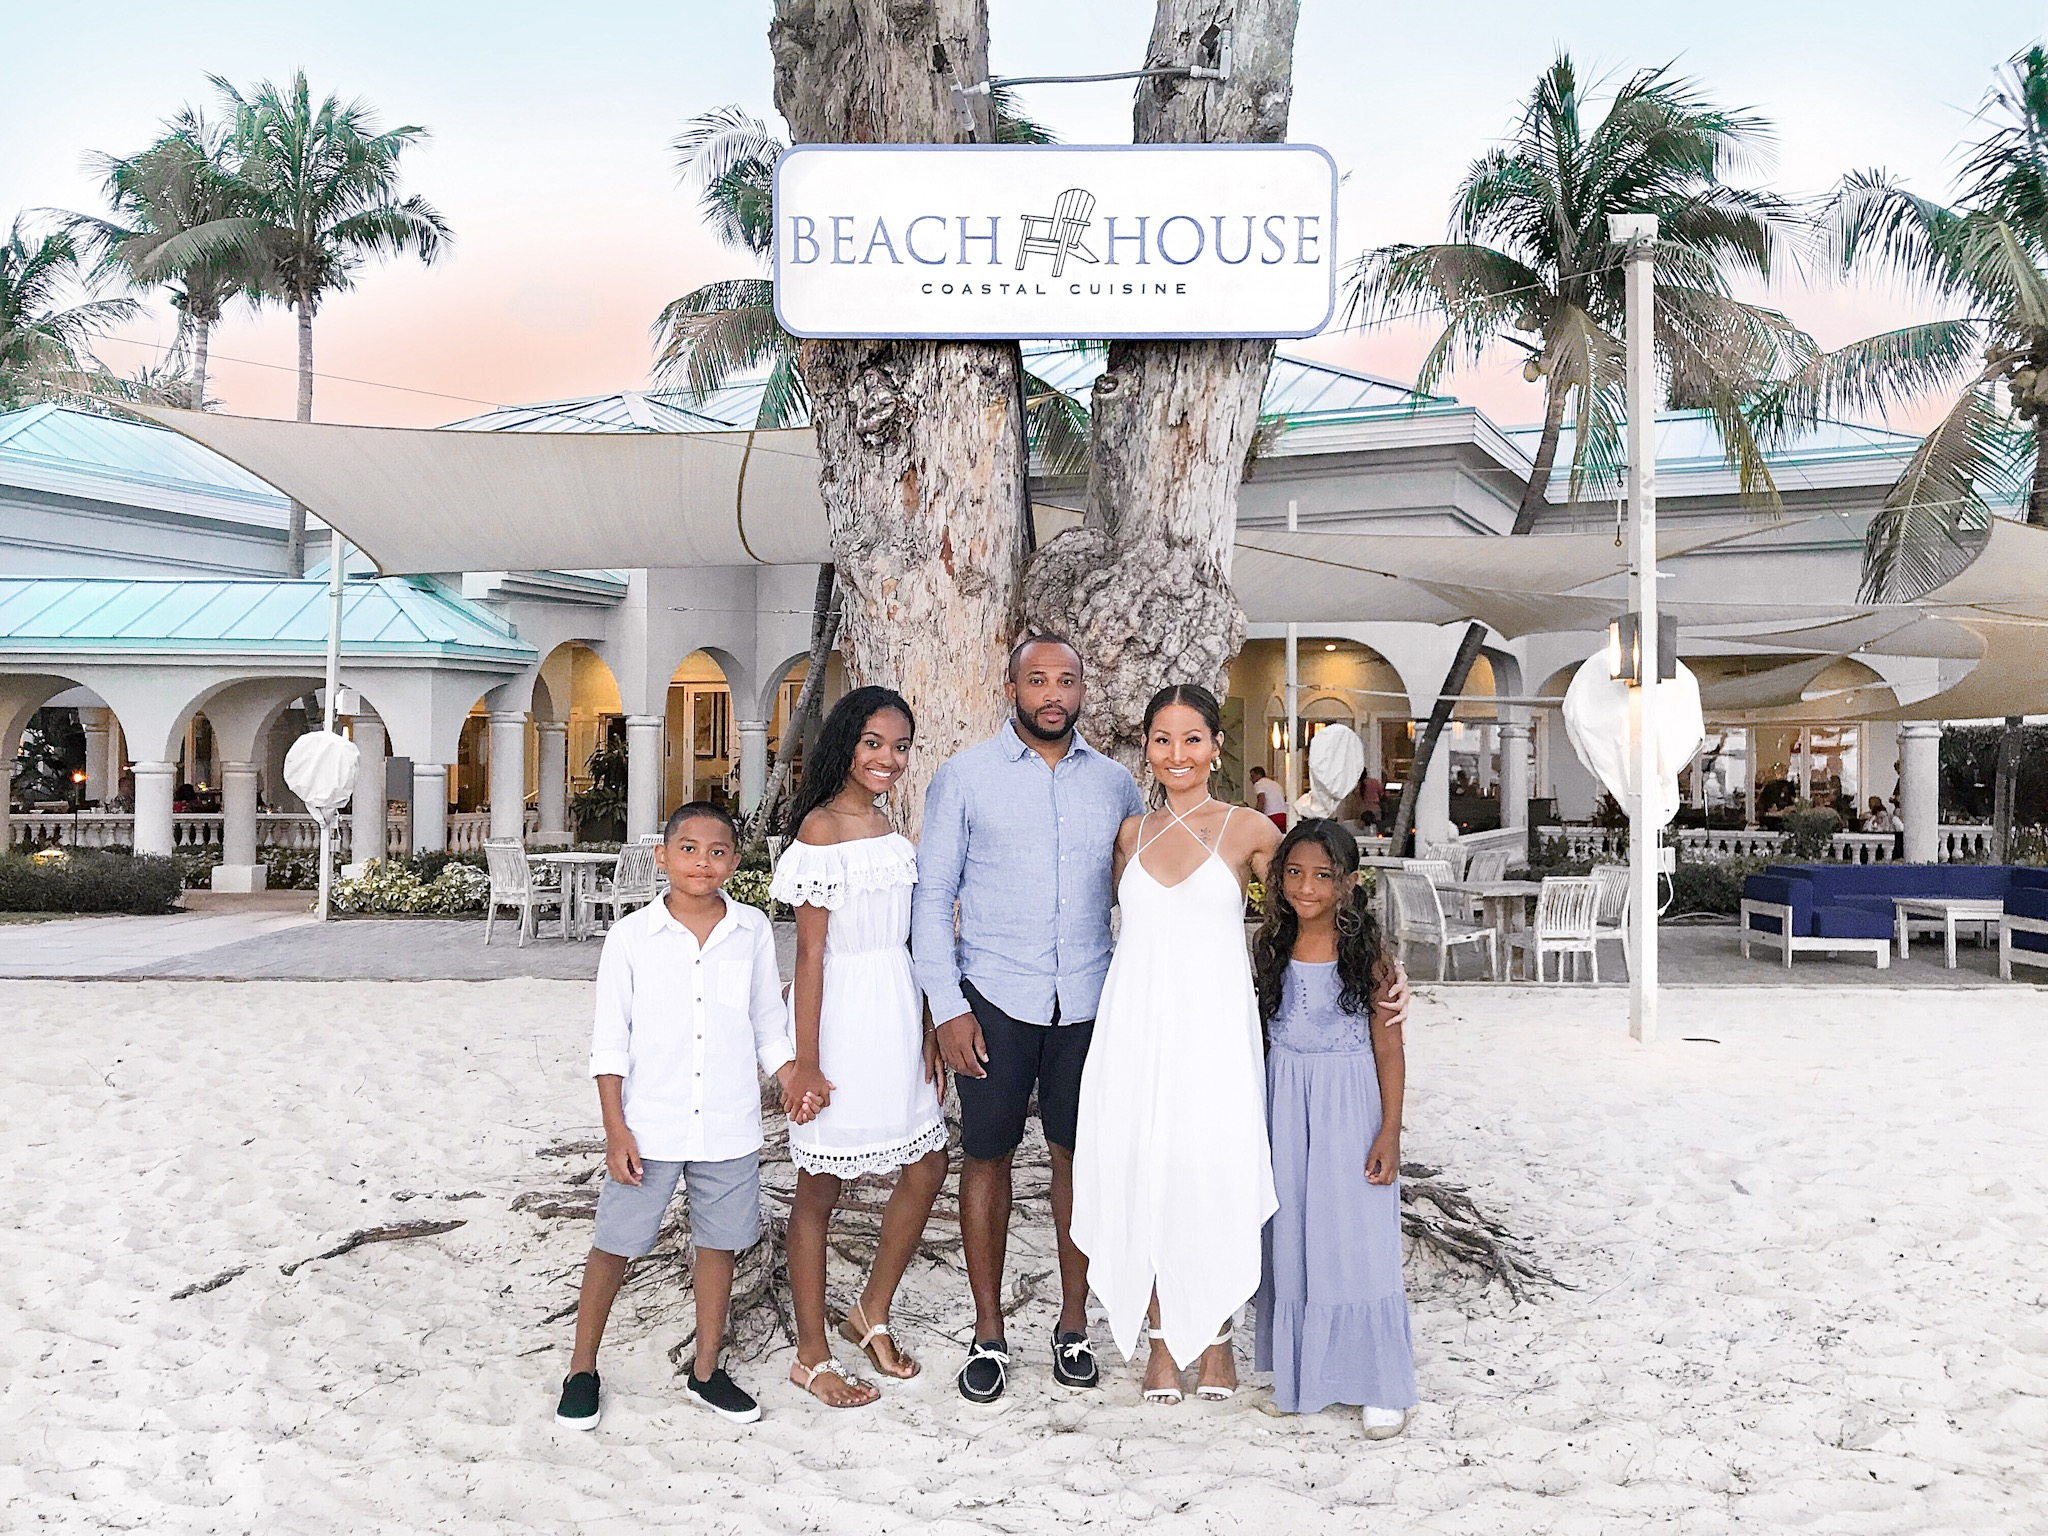 Best restaurants in grand cayman, Beach house Coastal Cuisine, Beach House Westin grand cayman,Westin Seven Mile Beach, family goals, blasian Family, stylish families